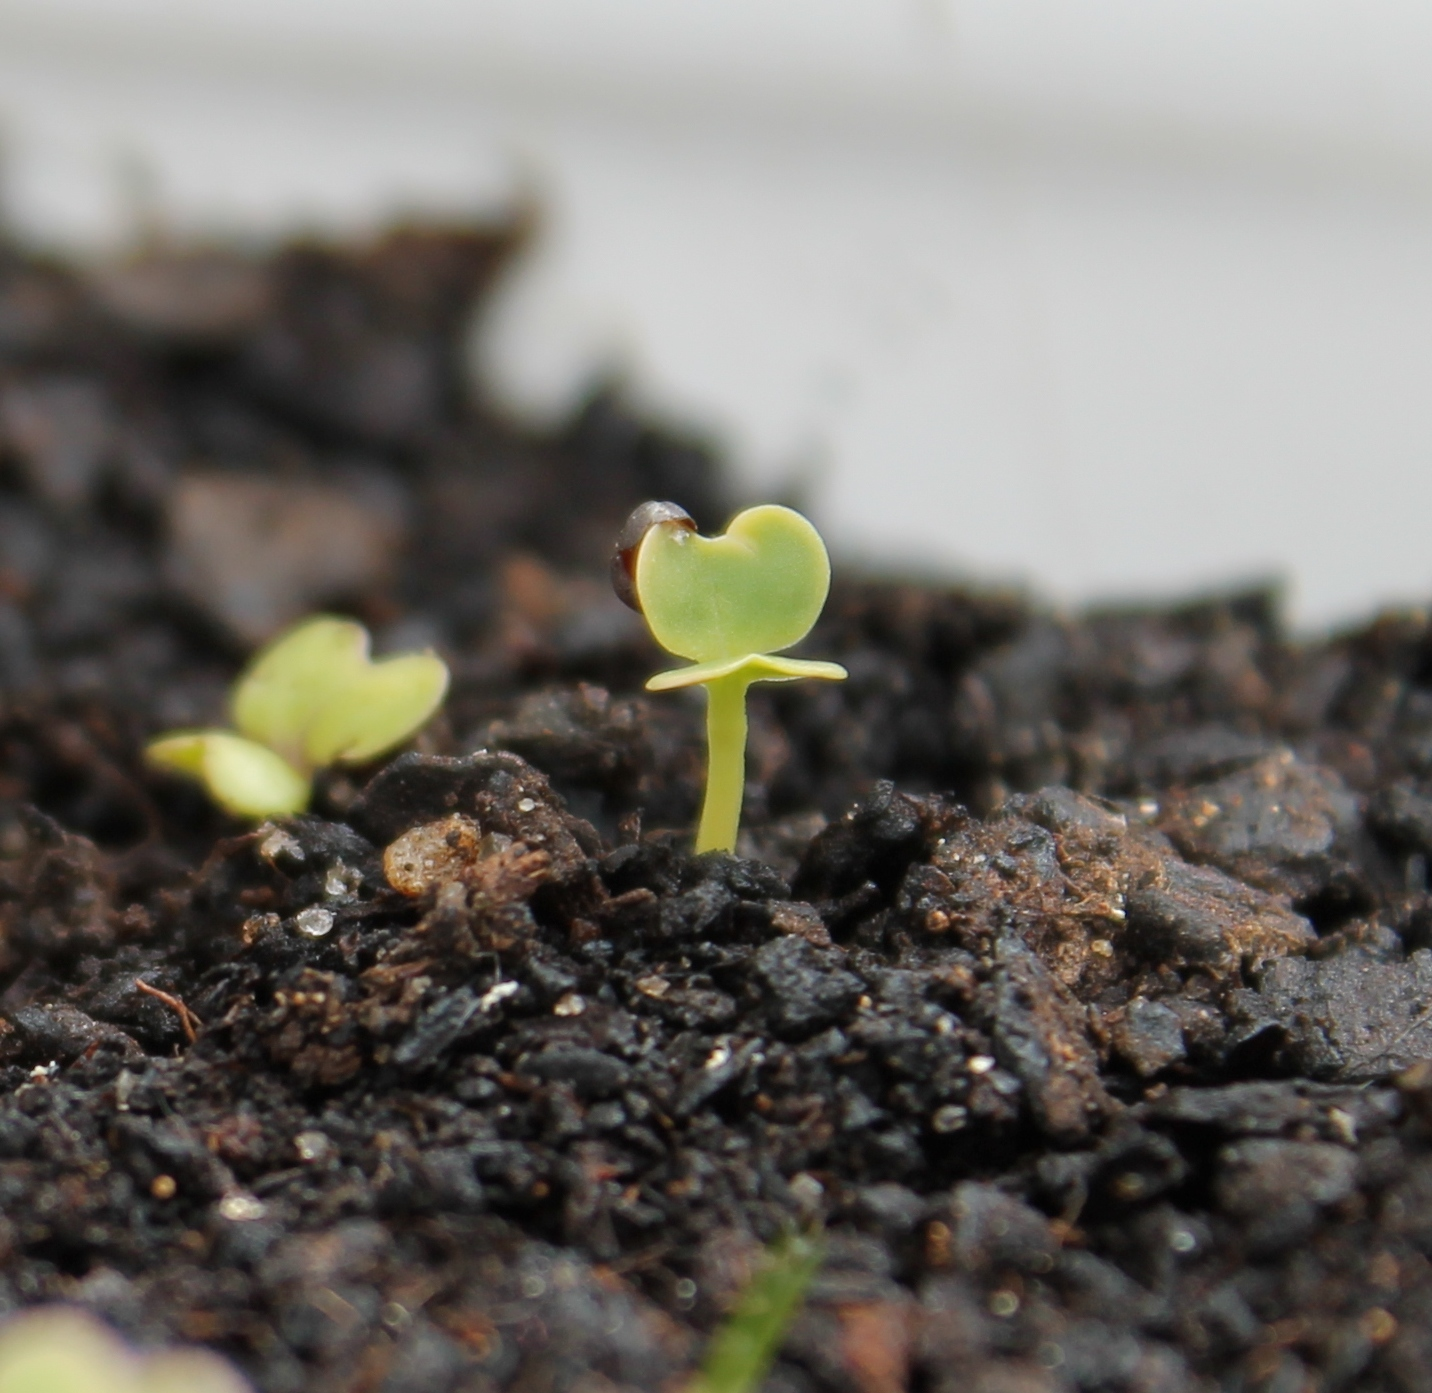 Seedling with seed case